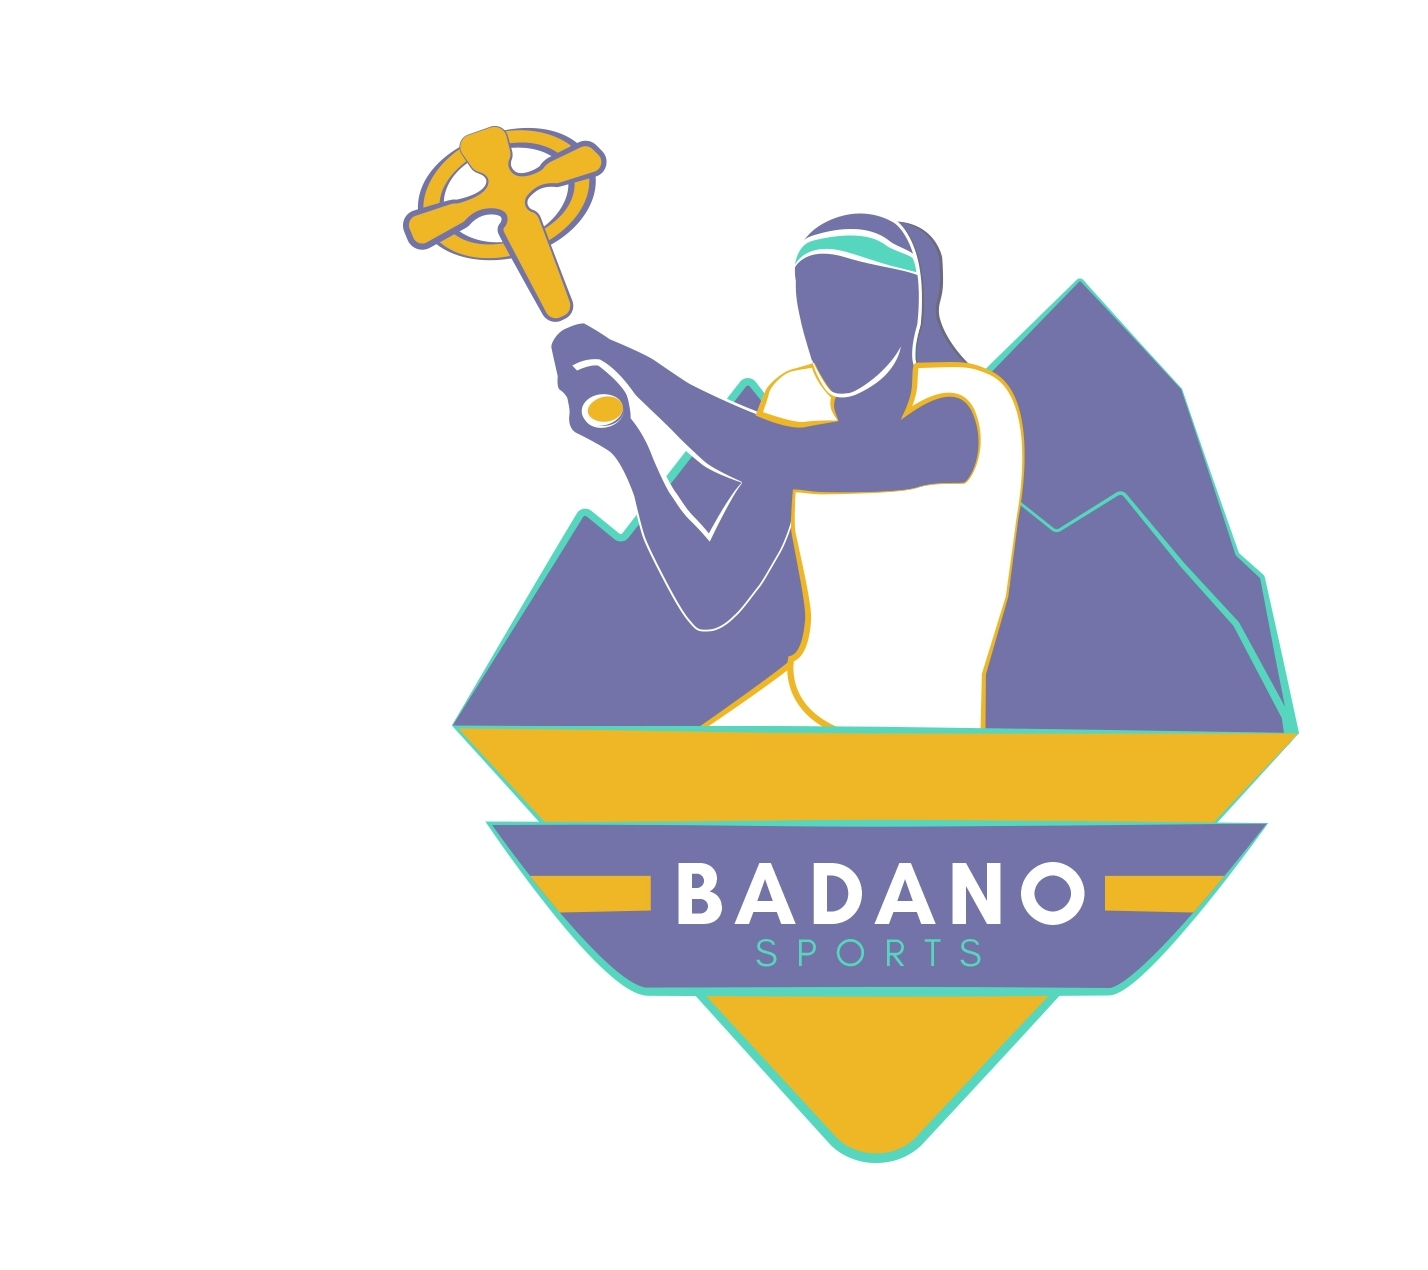 Mission - The mission of Badano Sports is to form strong female disciples of Jesus Christ. Through sports, we seek to foster authentic feminine spirituality, servant leadership, vocation discernment, and joyful Catholic witness.